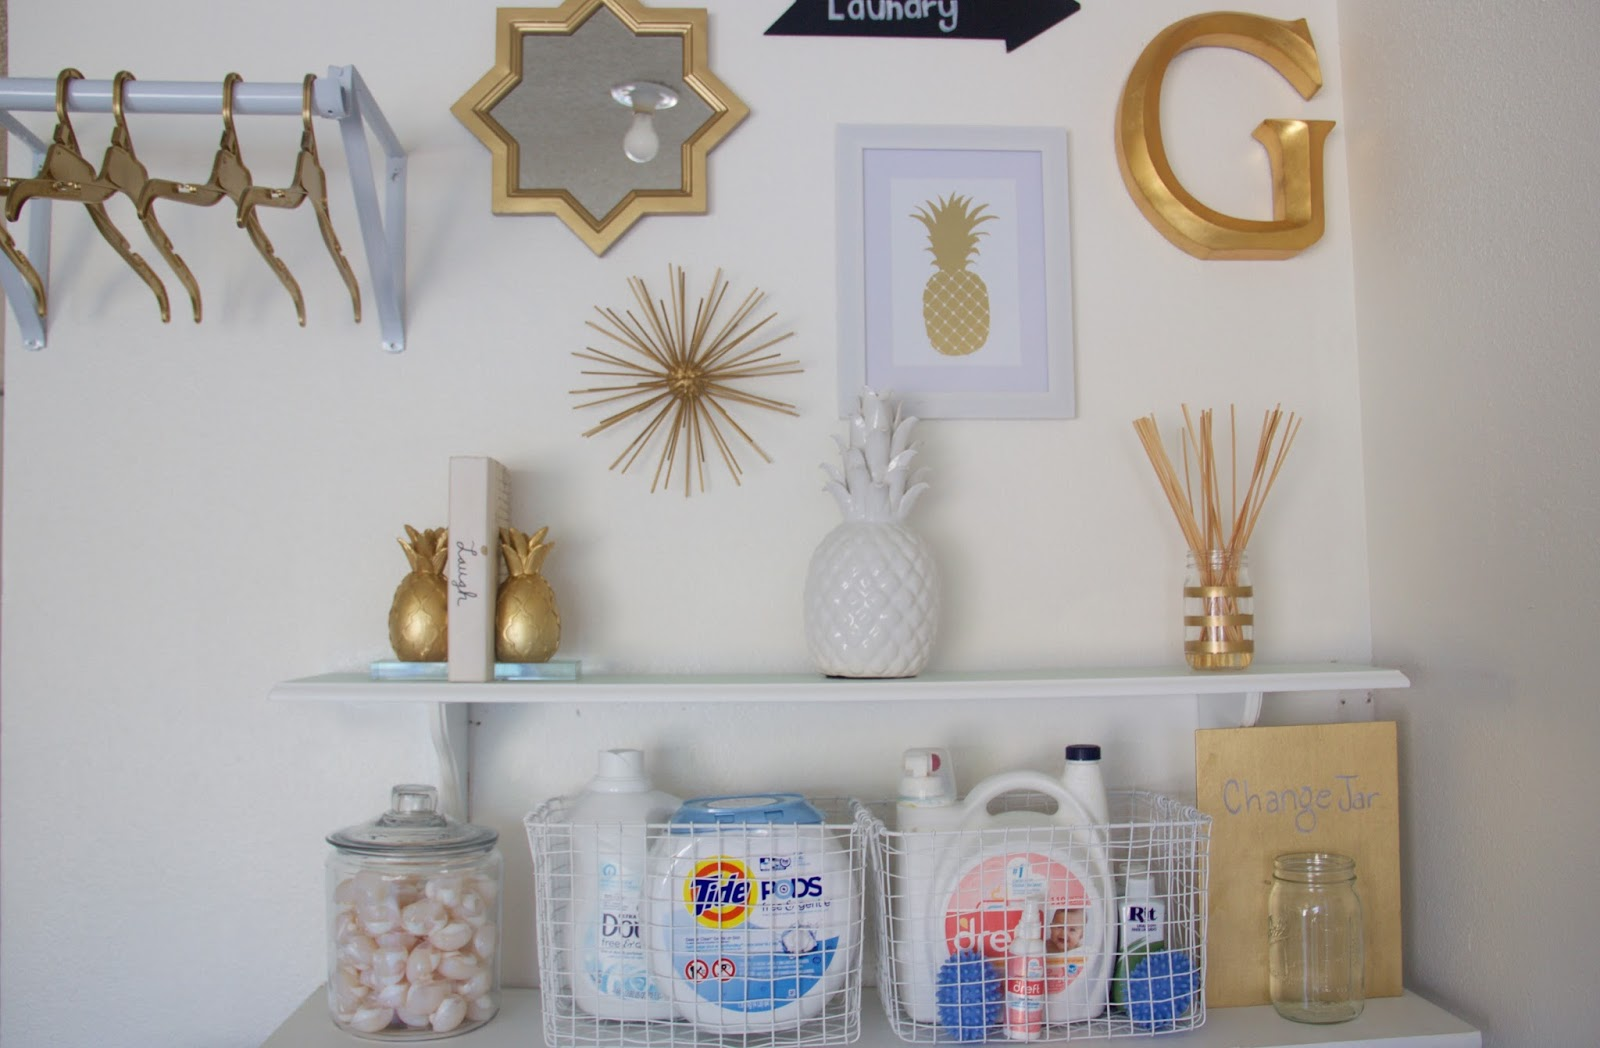 laundry room ideas, white and gold laundry room